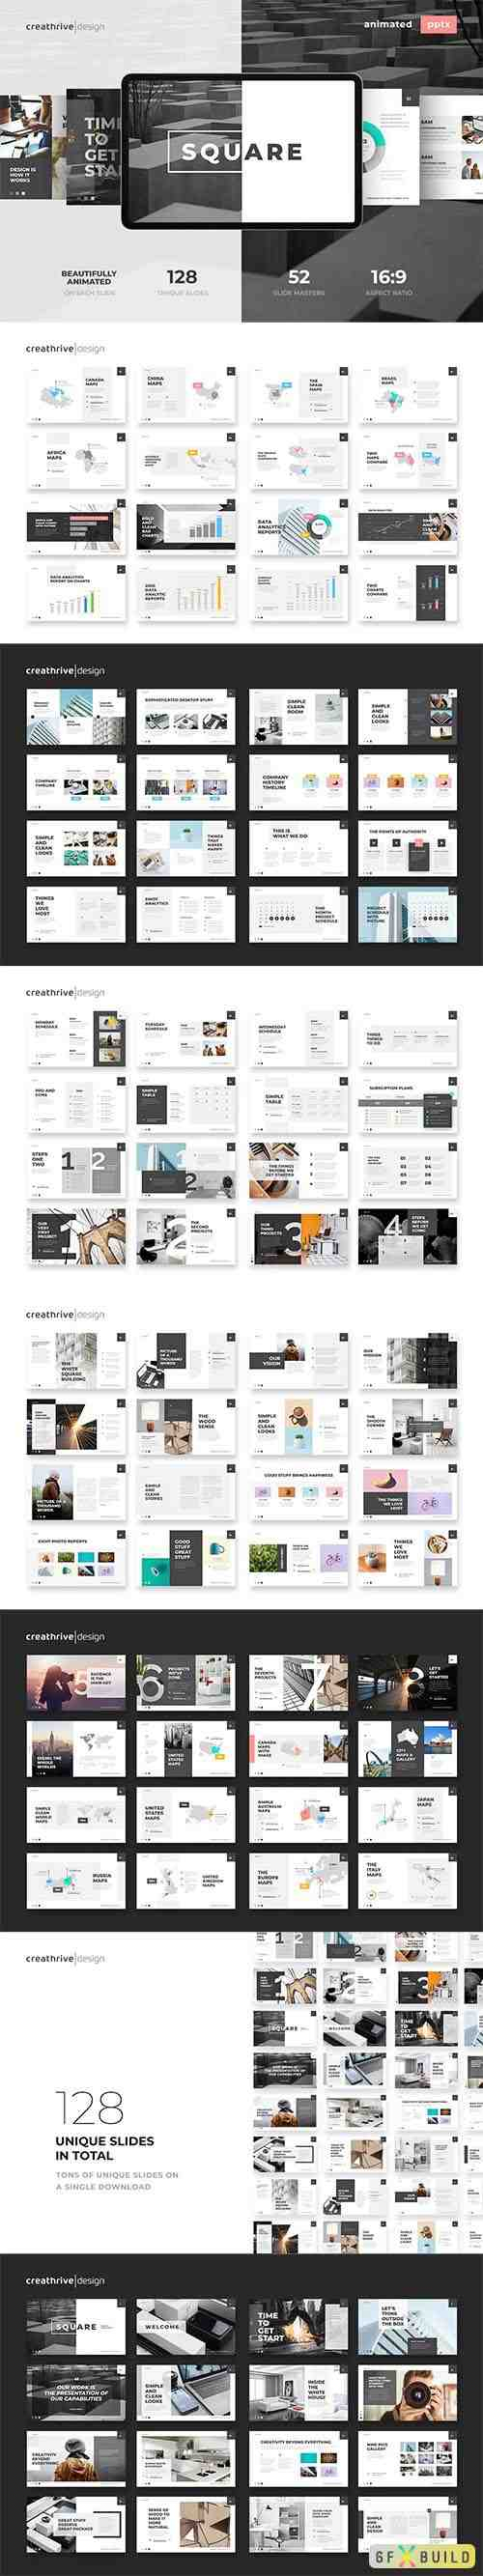 Square Animated PowerPoint and Keynote